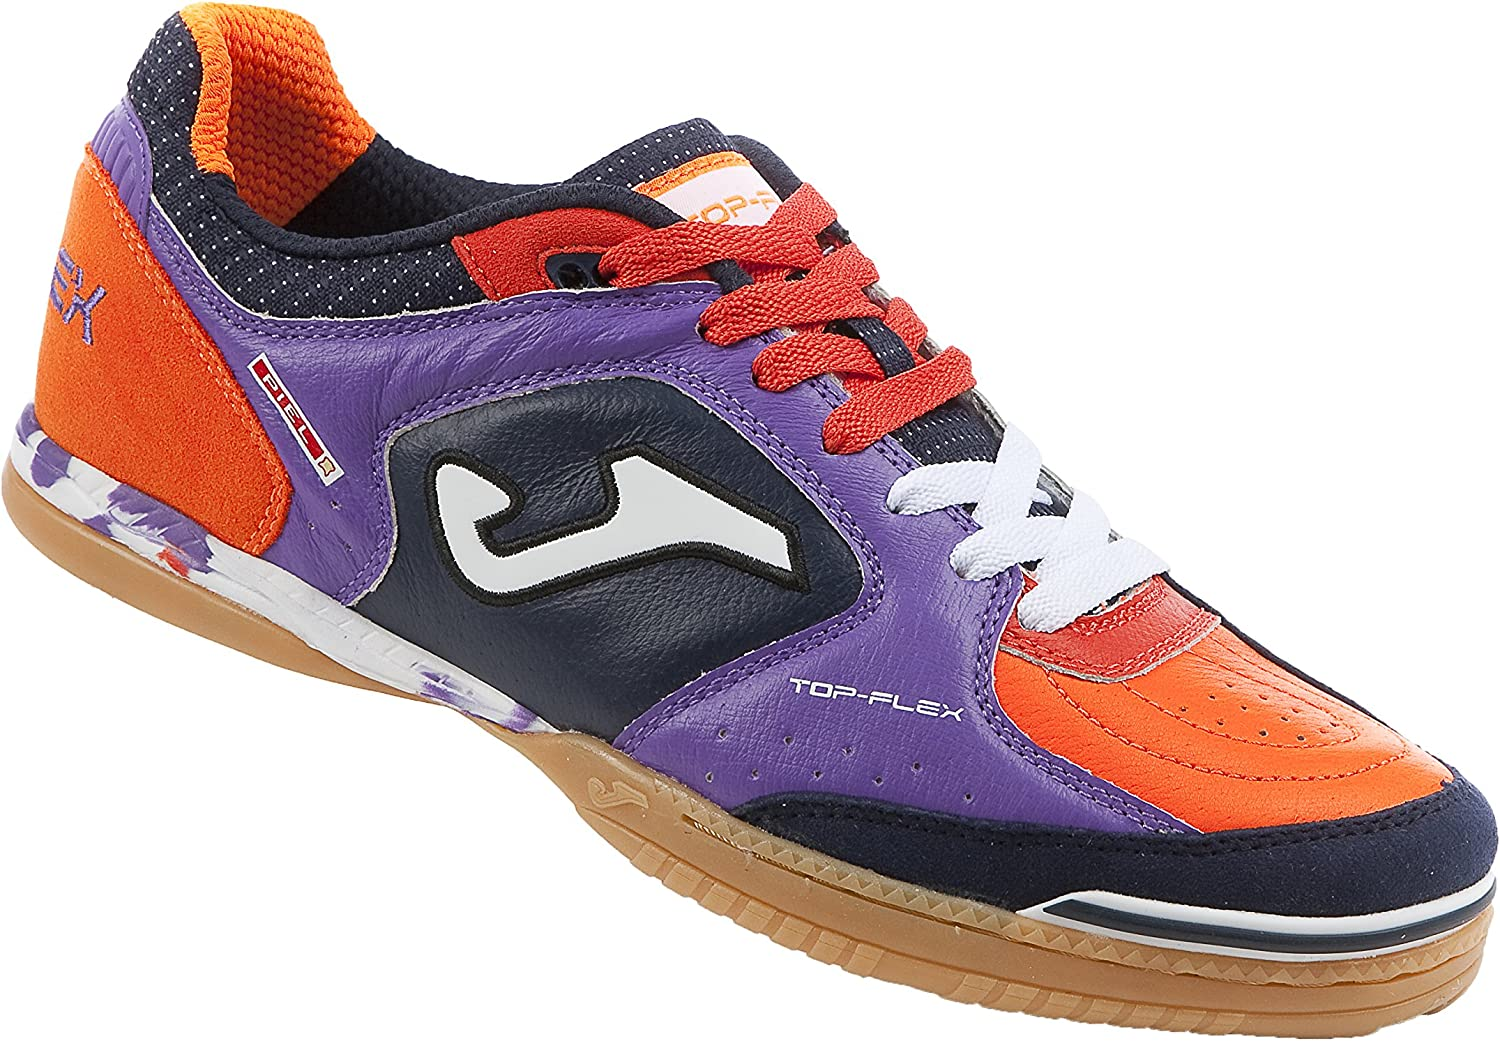 Joma Top Flex Purple – Black – orange Football shoes